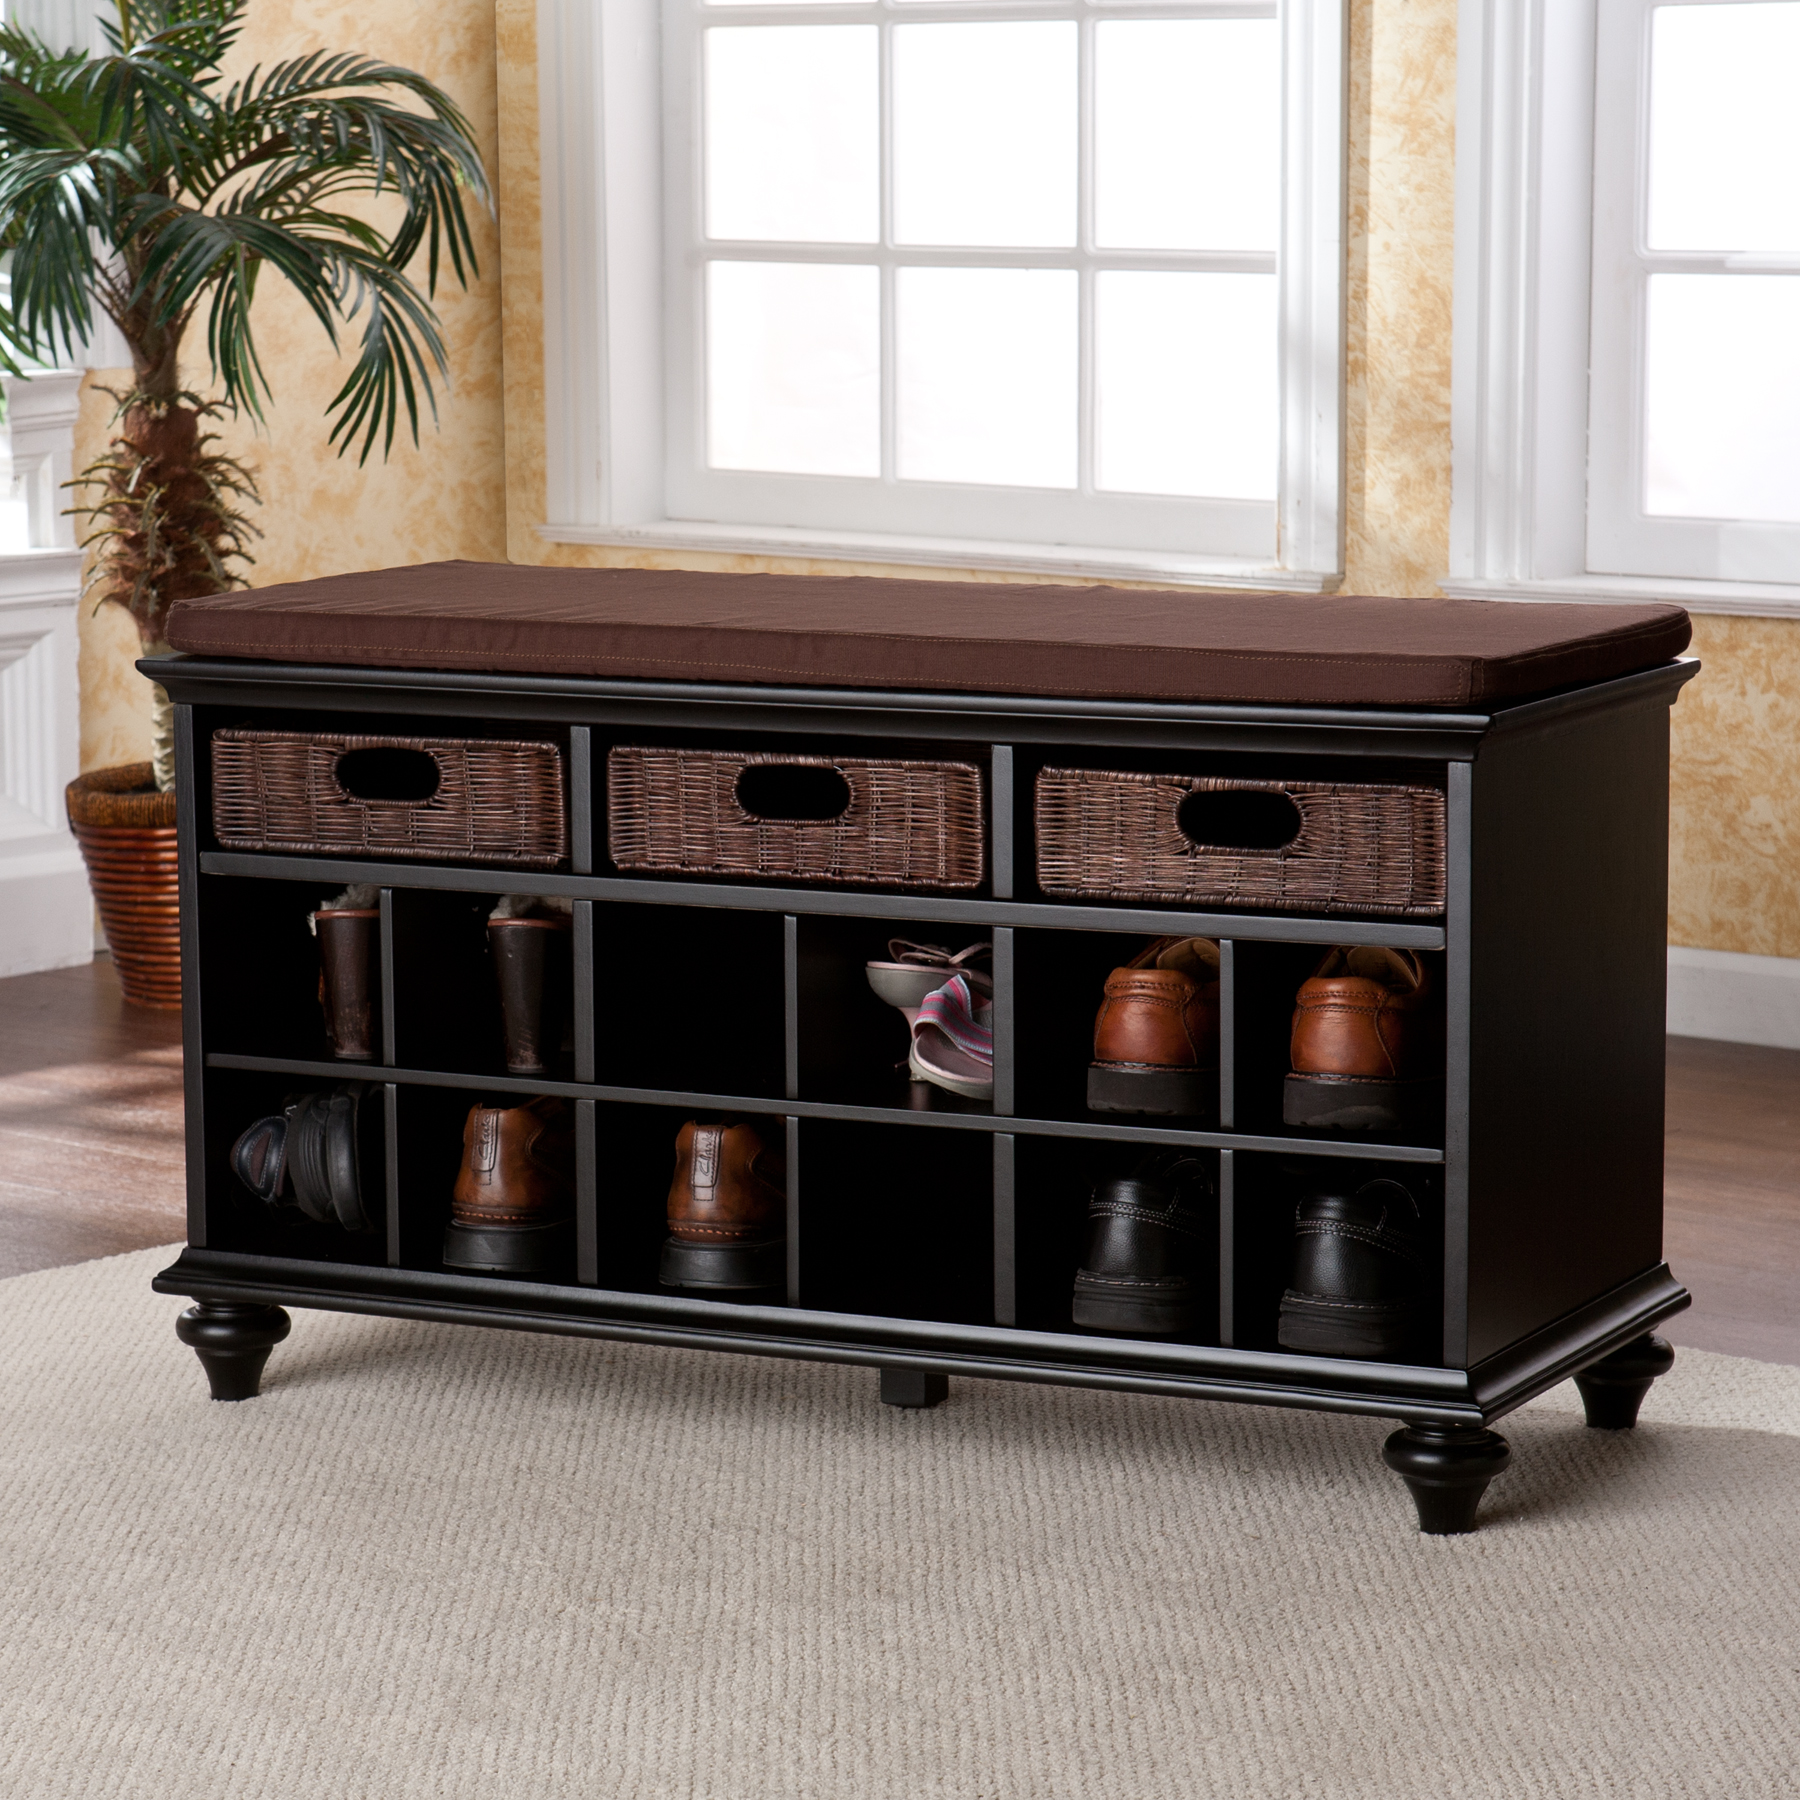 Image of: New Shoe Storage Bench